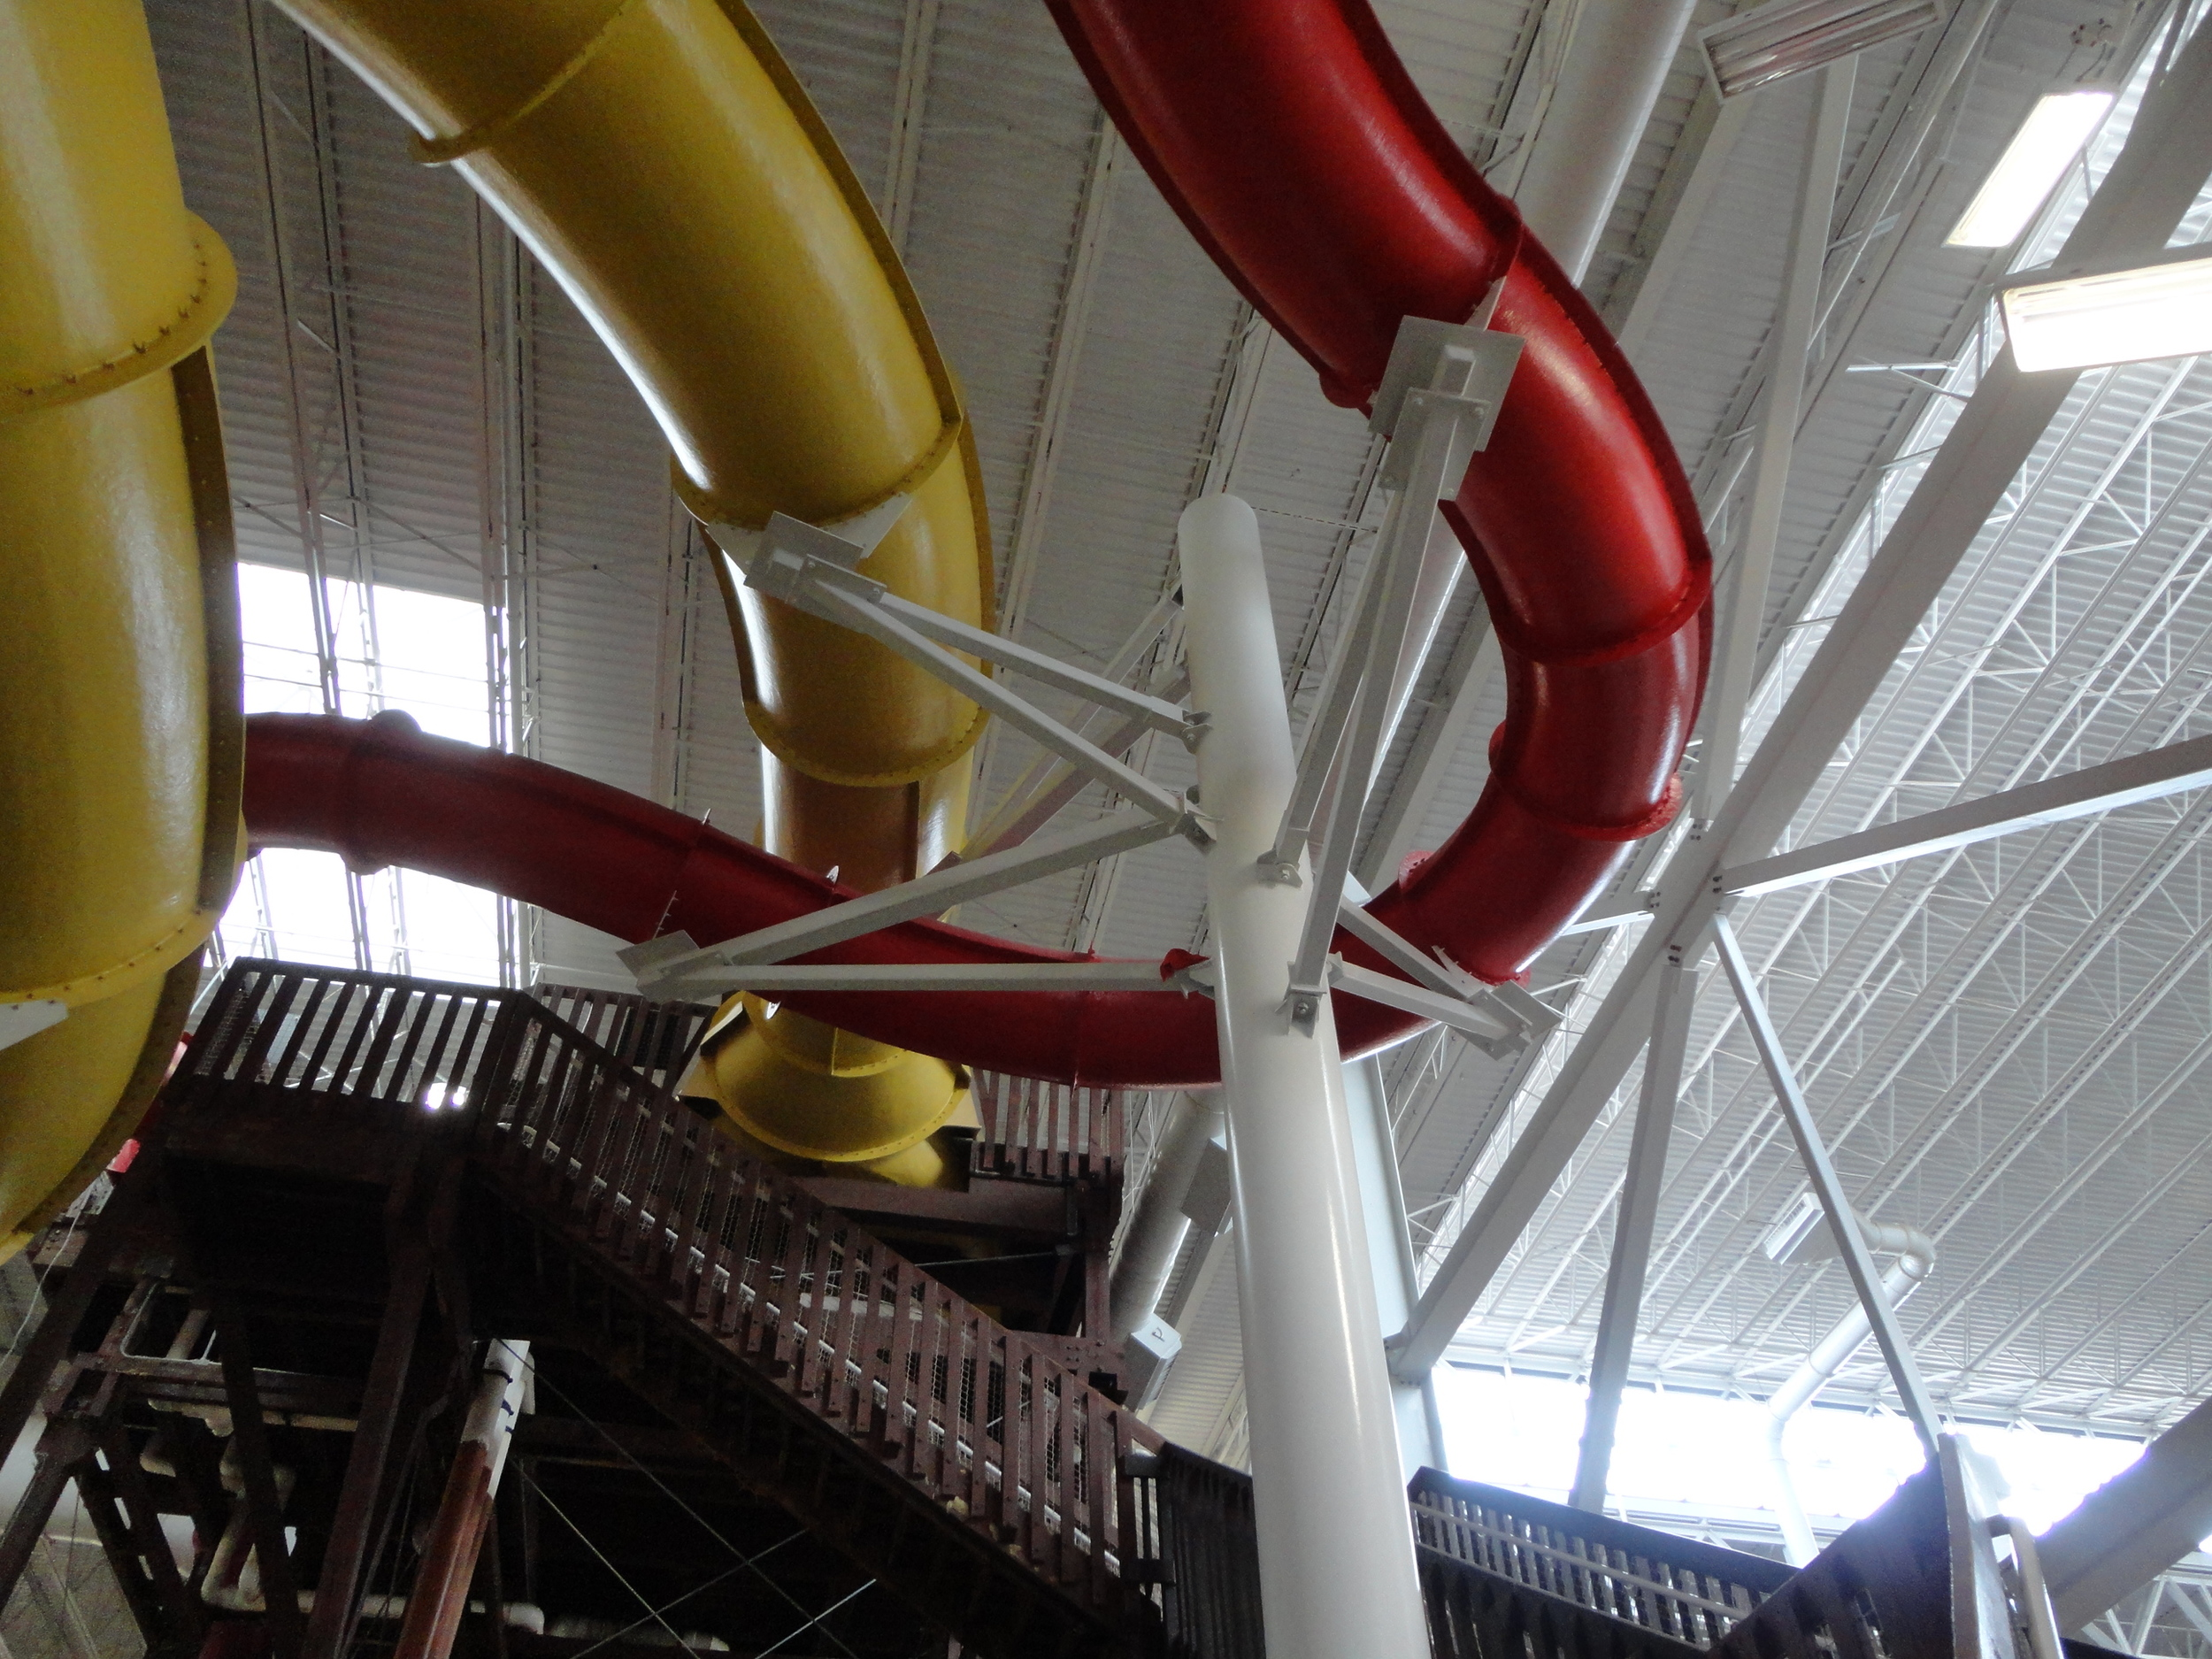 Under side view from the ground of 2 water slides